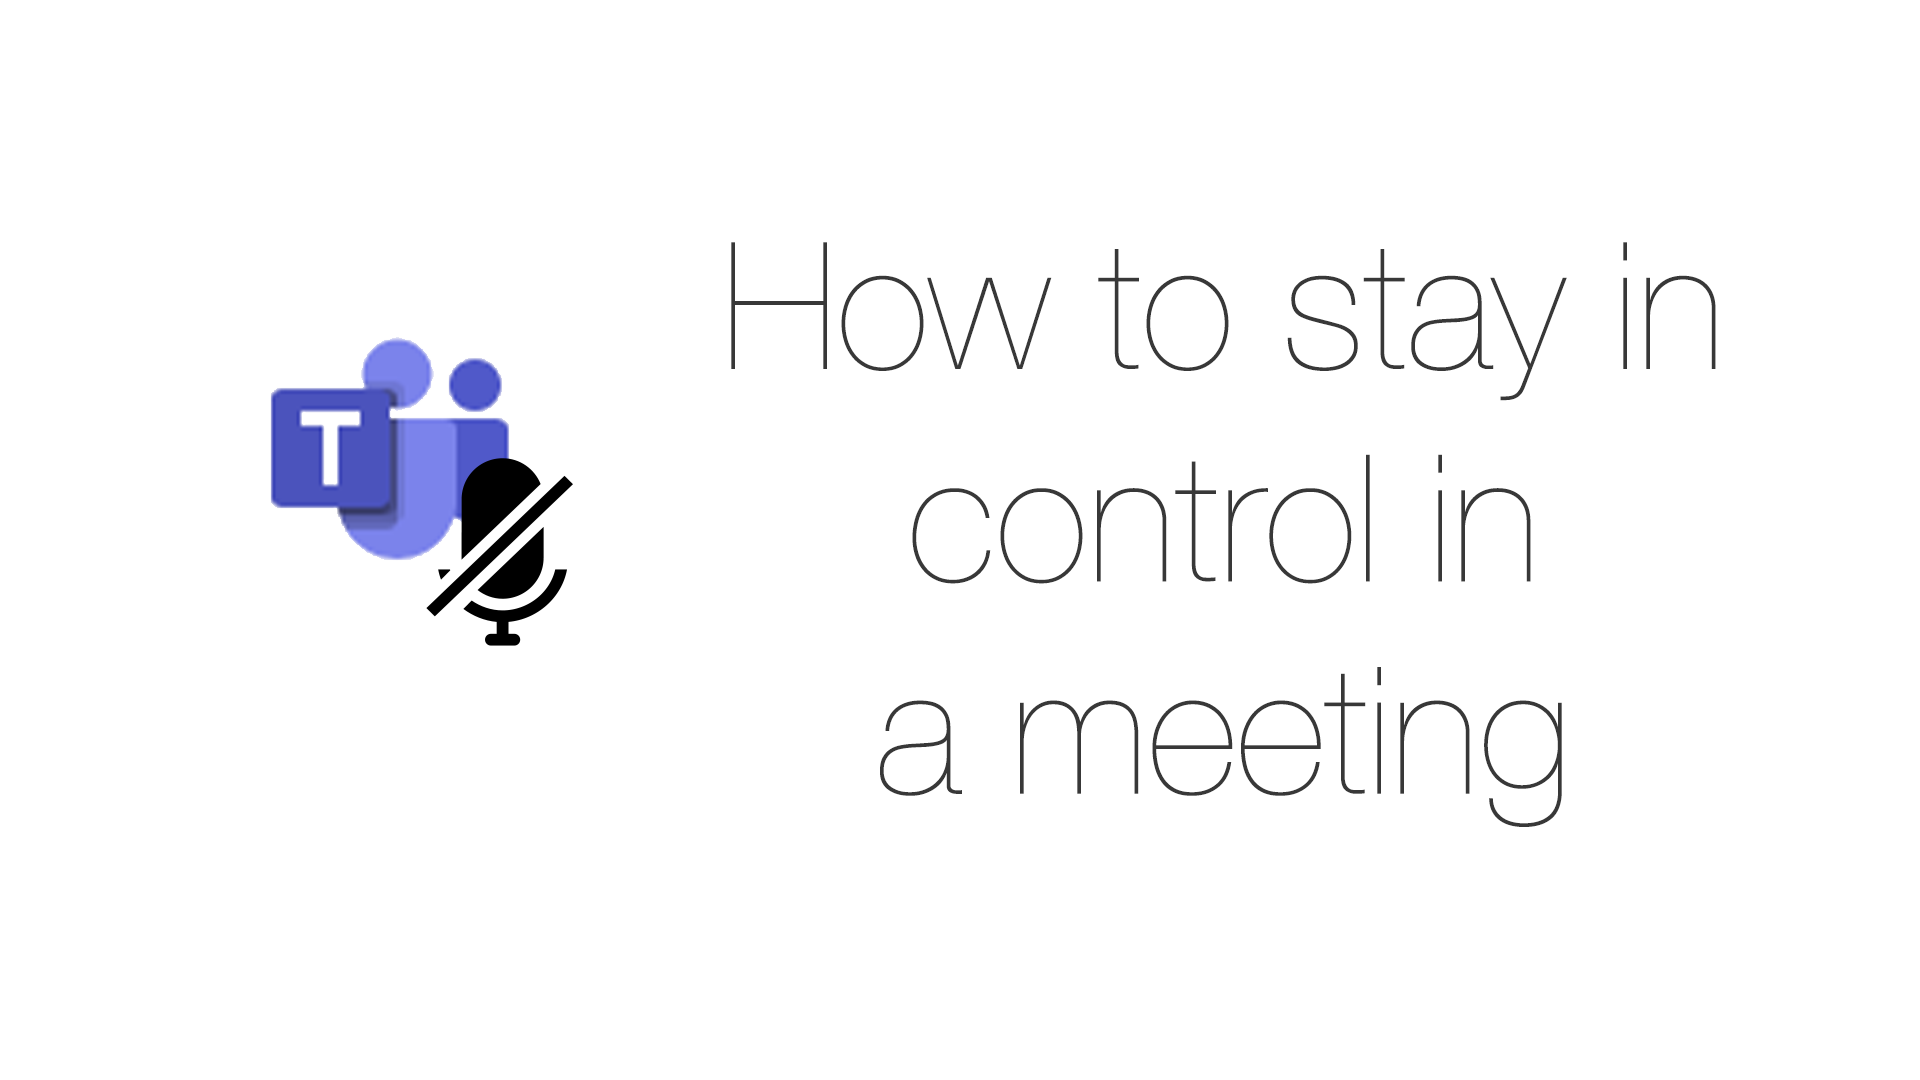 How to stay in control in a meeting.